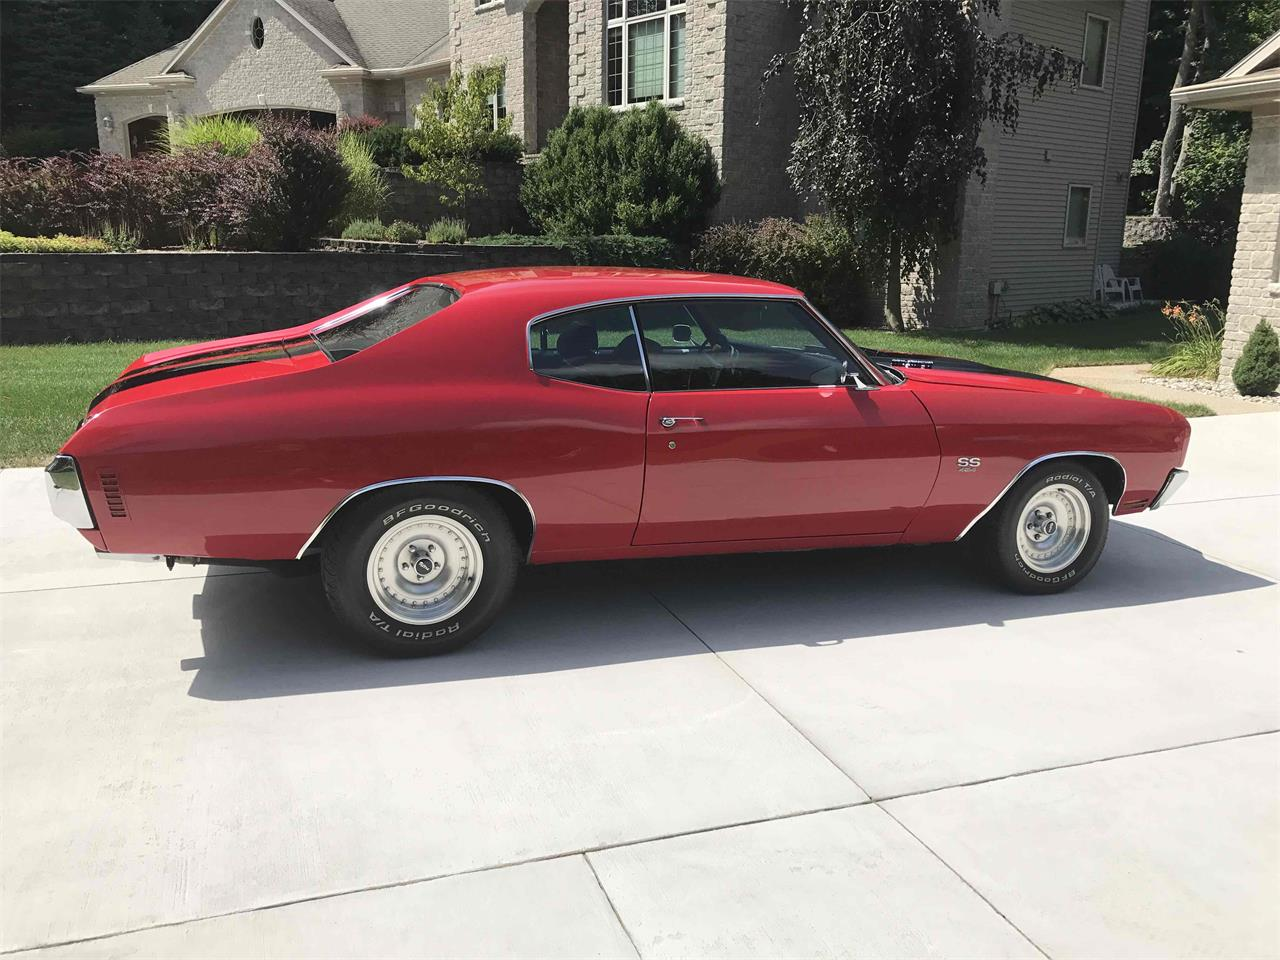 1970 Chevrolet Chevelle SS (CC-1248962) for sale in Jenison, Michigan